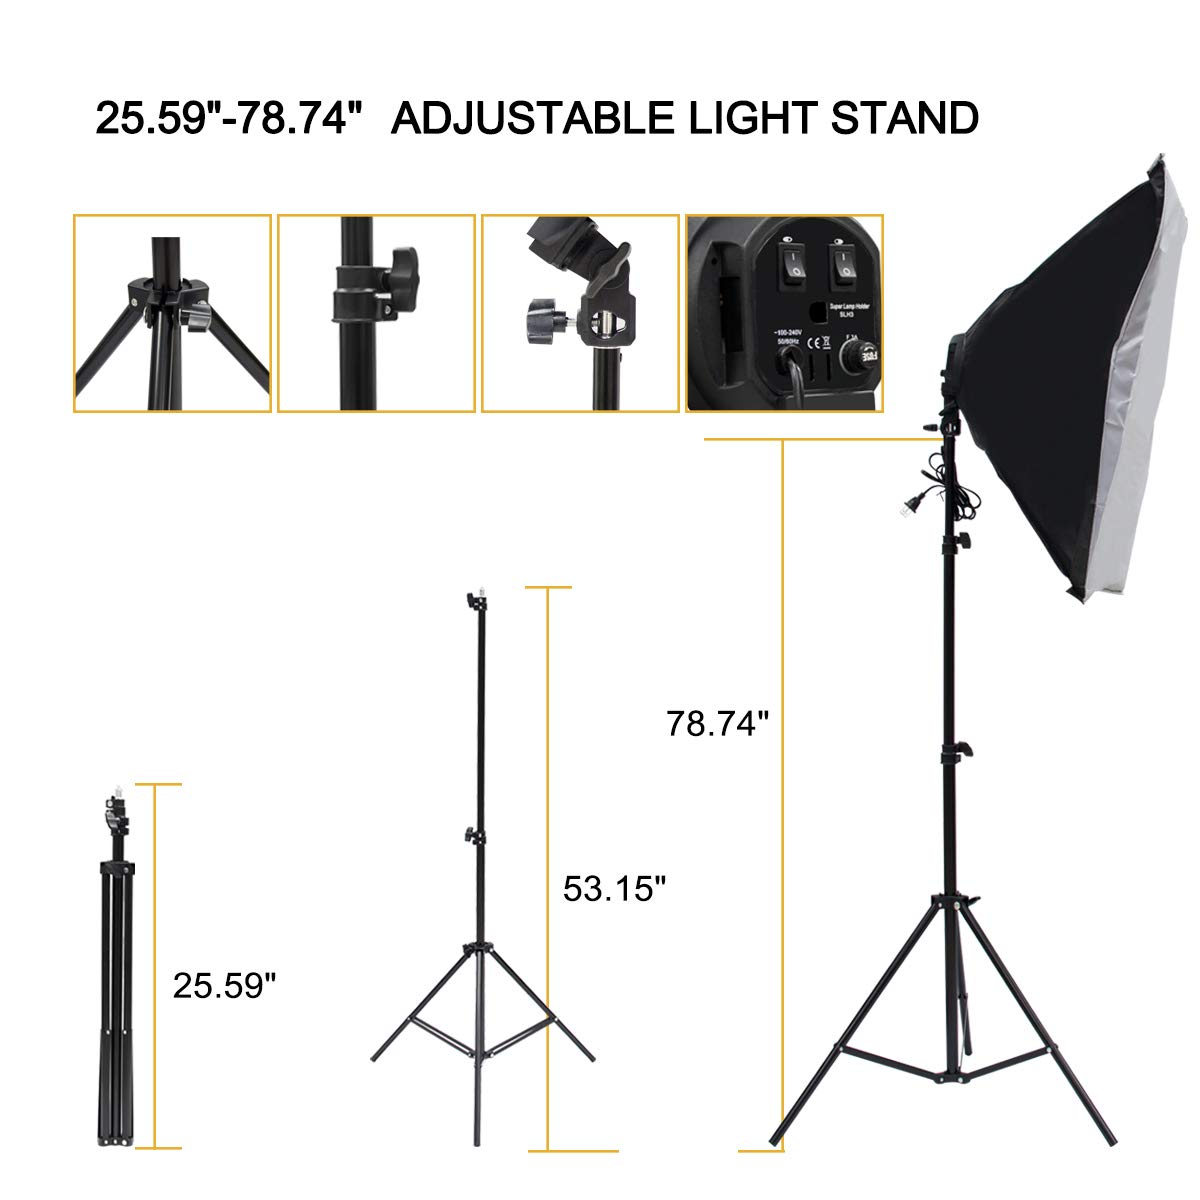 Wisamic Photography Video Studio Lighting Kit, Background Support System 10ft x 6.6ft/2MX3M with 3 Color Backdrop, 3 Umbrella, 3 Softbox, Continuous Lighting Kit for Photo Video Shooting Photography by Wisamic (Image #7)